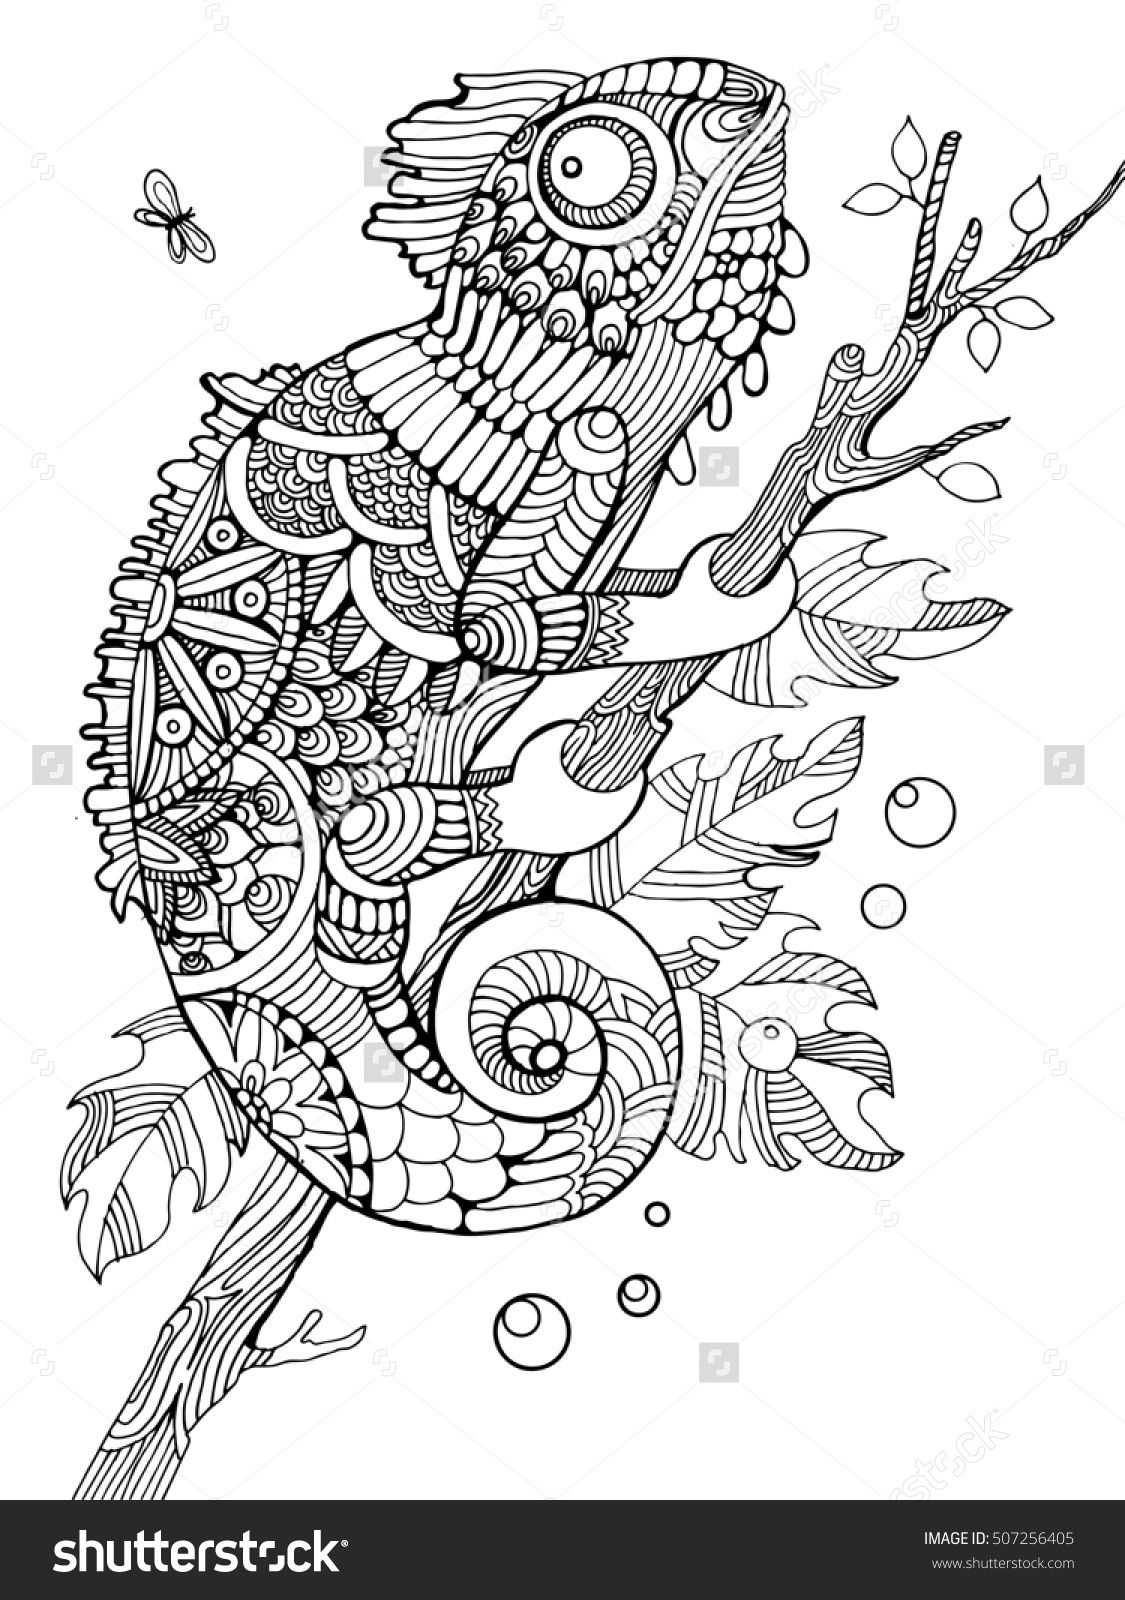 Free coloring pages chameleon - Chameleon Coloring Page For Adults Zentangle Style